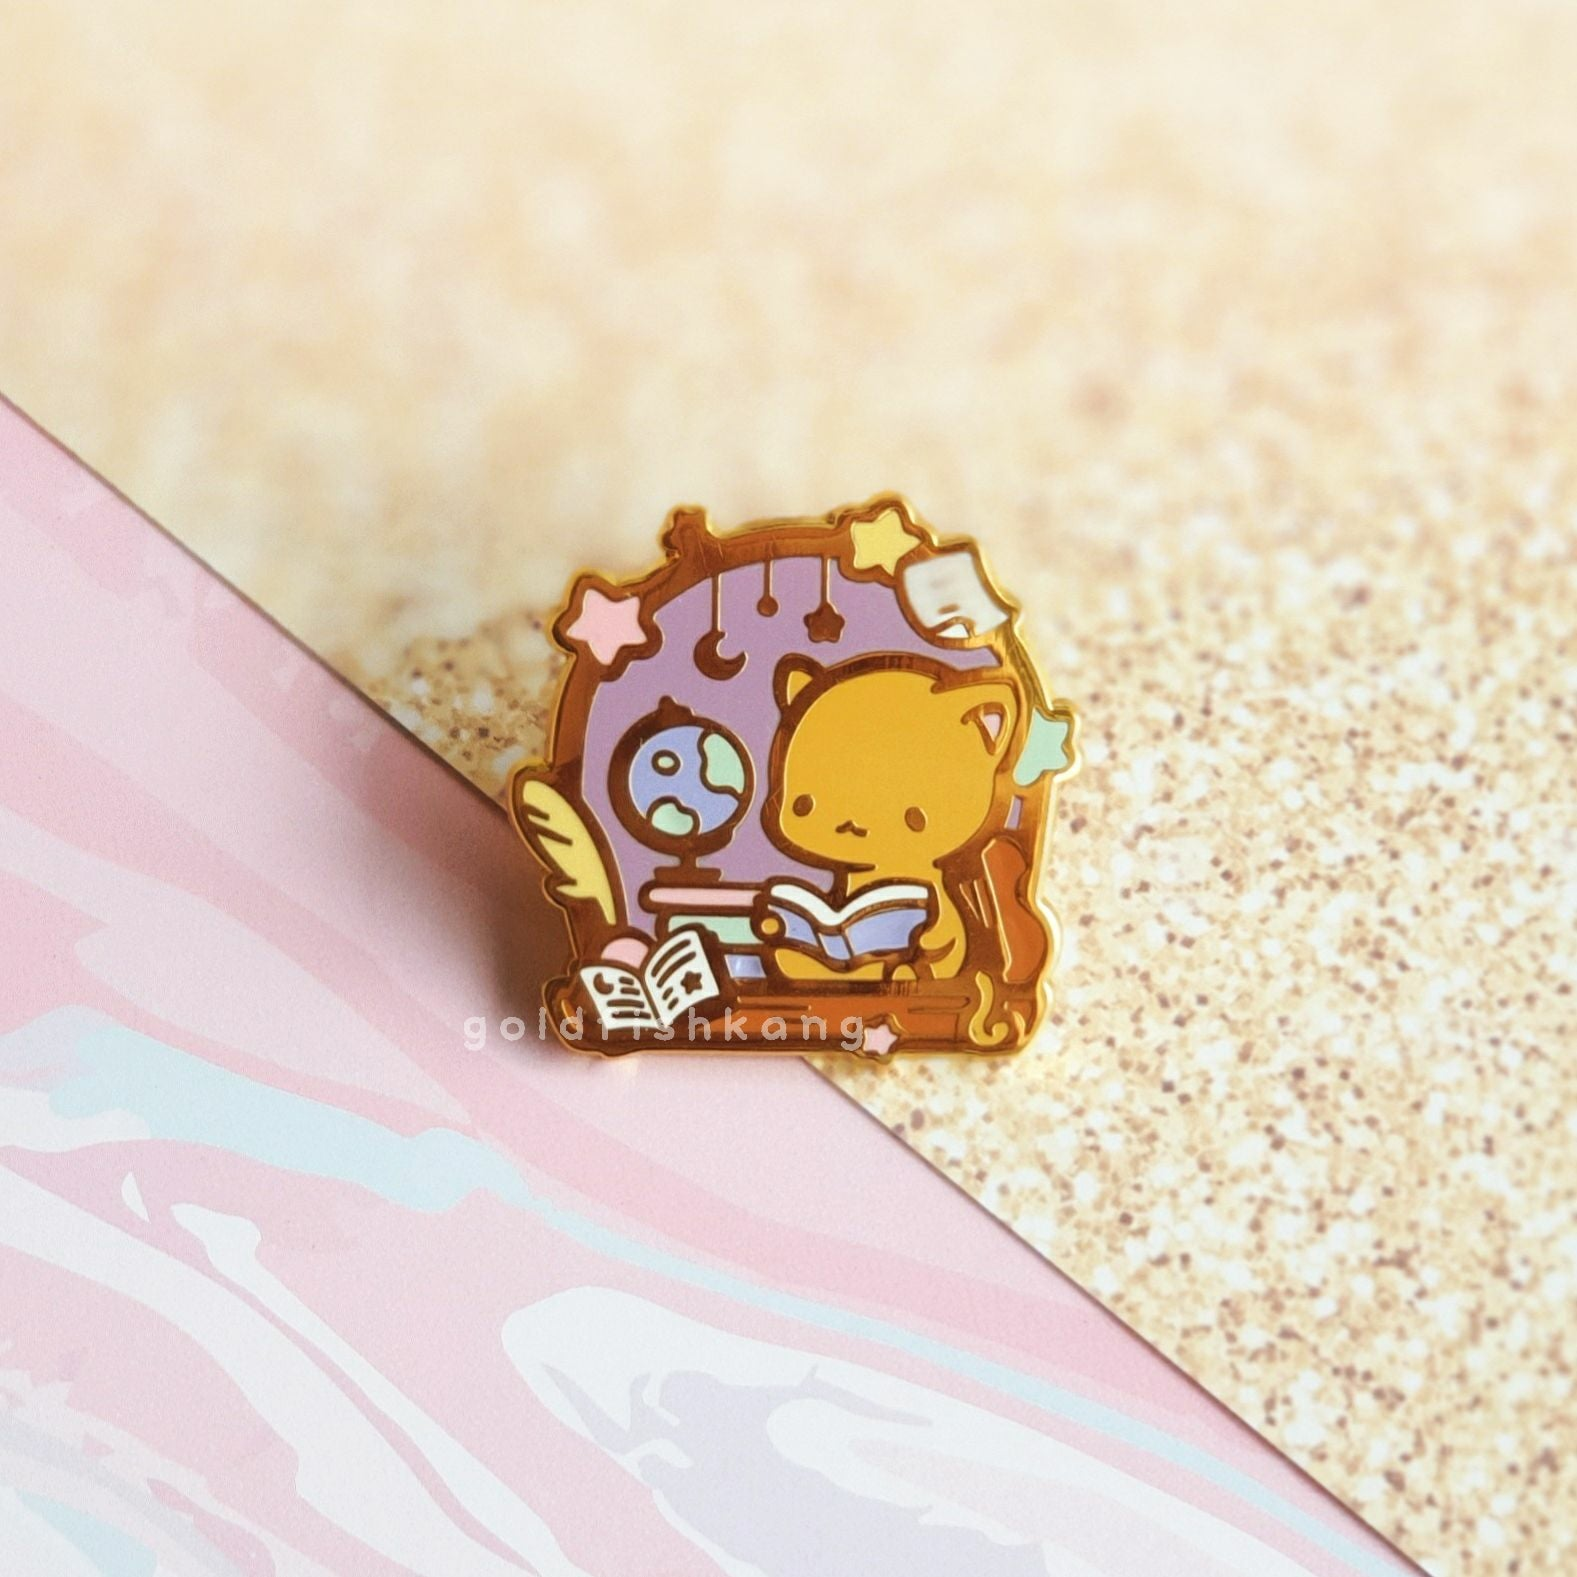 Windowsill Pals Enamel Pin: Star Scholar